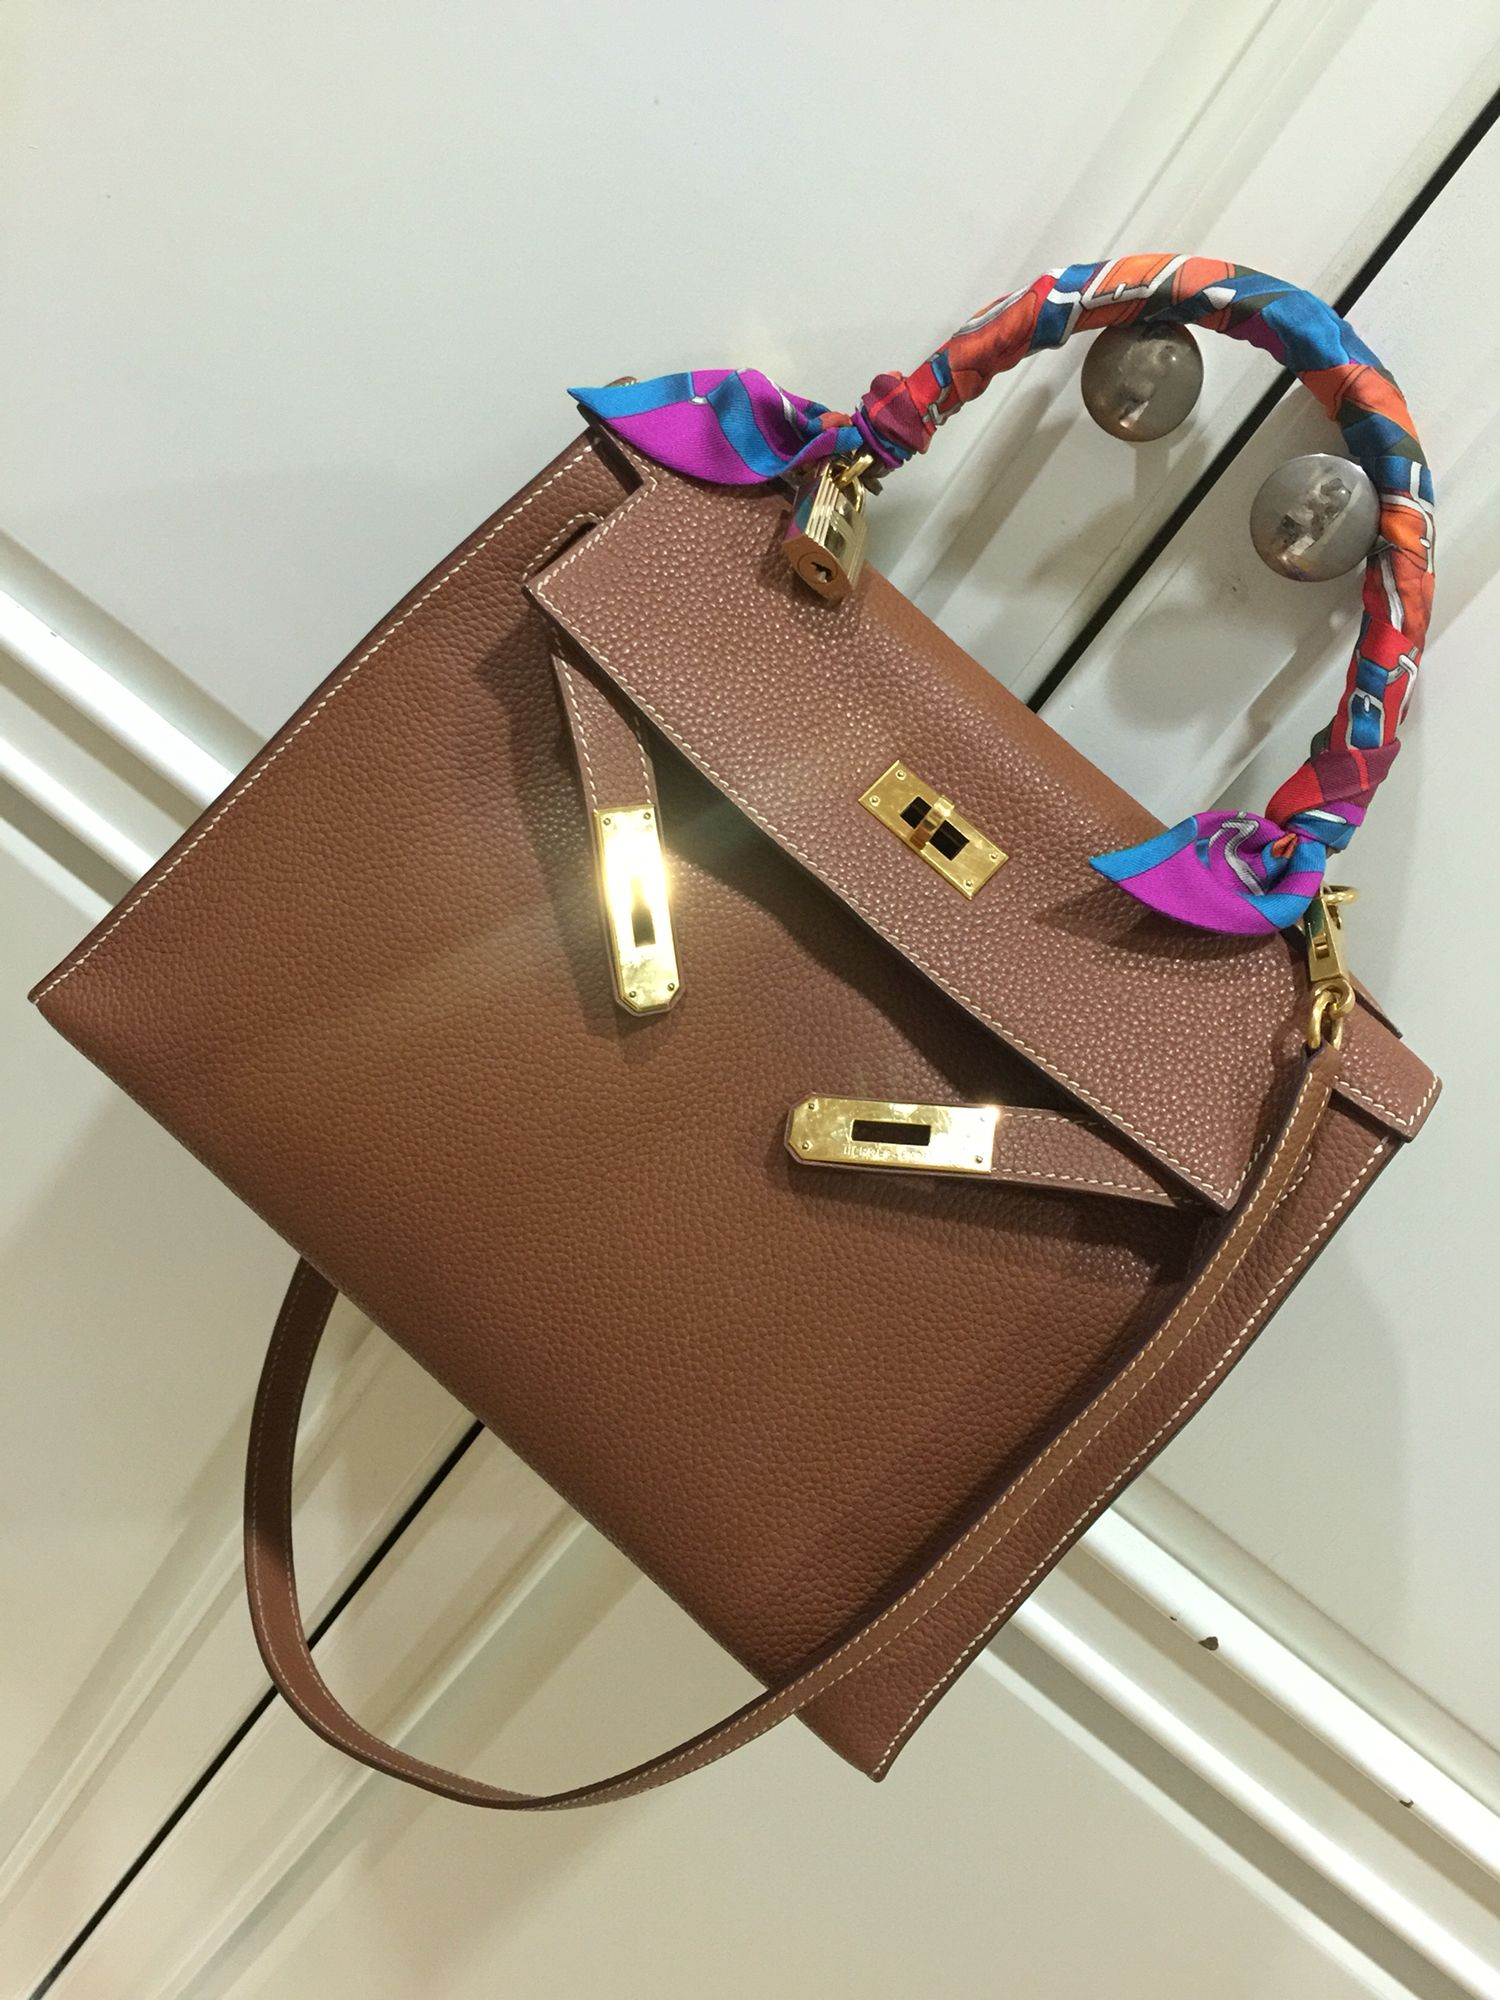 51a4a012a91f Hermes Kelly 28 Gold Togo GHW